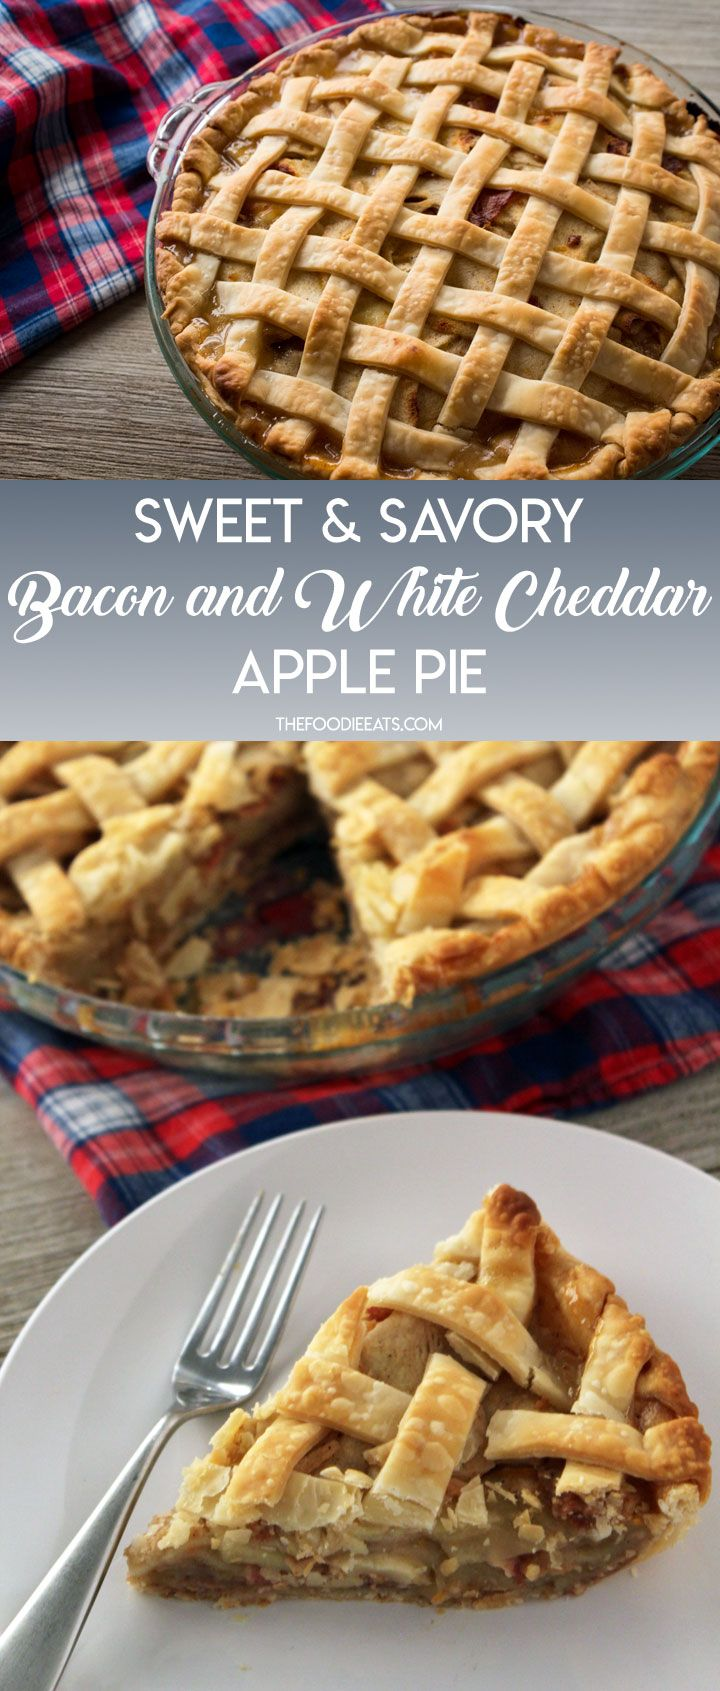 Sweet & Savory Apple Pie with Bacon and White Cheddar #applepie